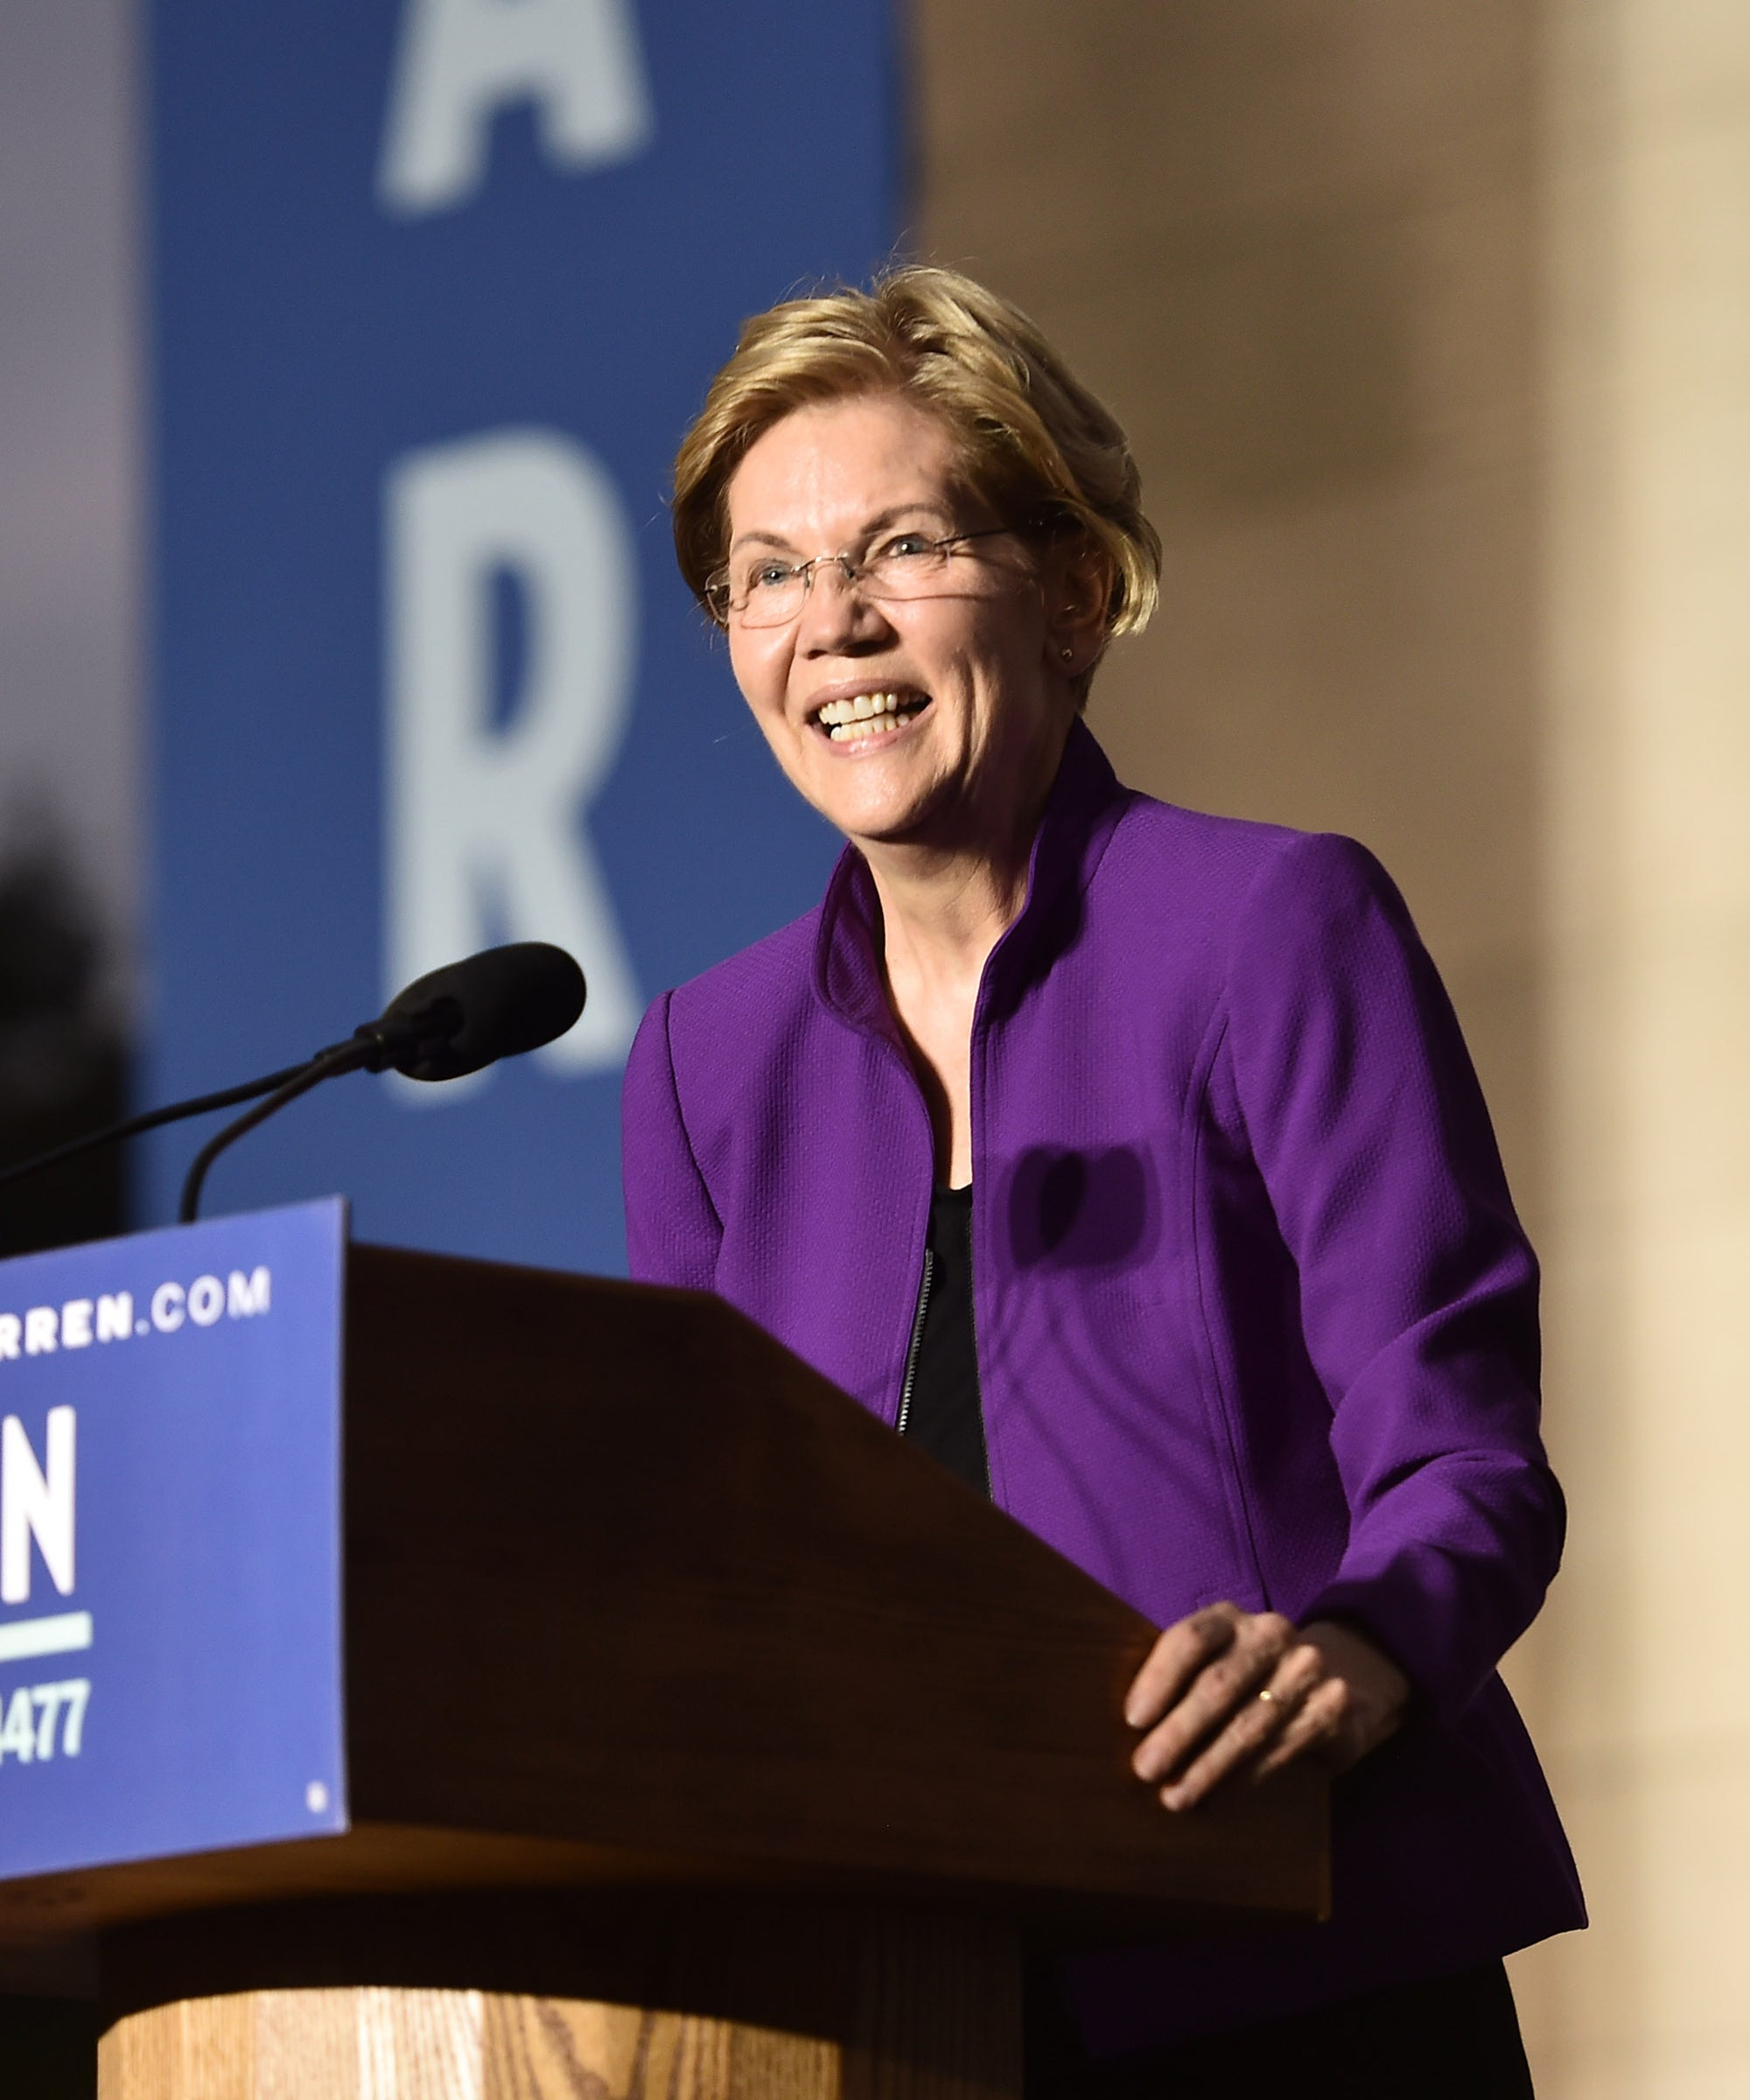 Elizabeth Warren's Refreshingly Gloomy Message & The Young People Who Love Her For It